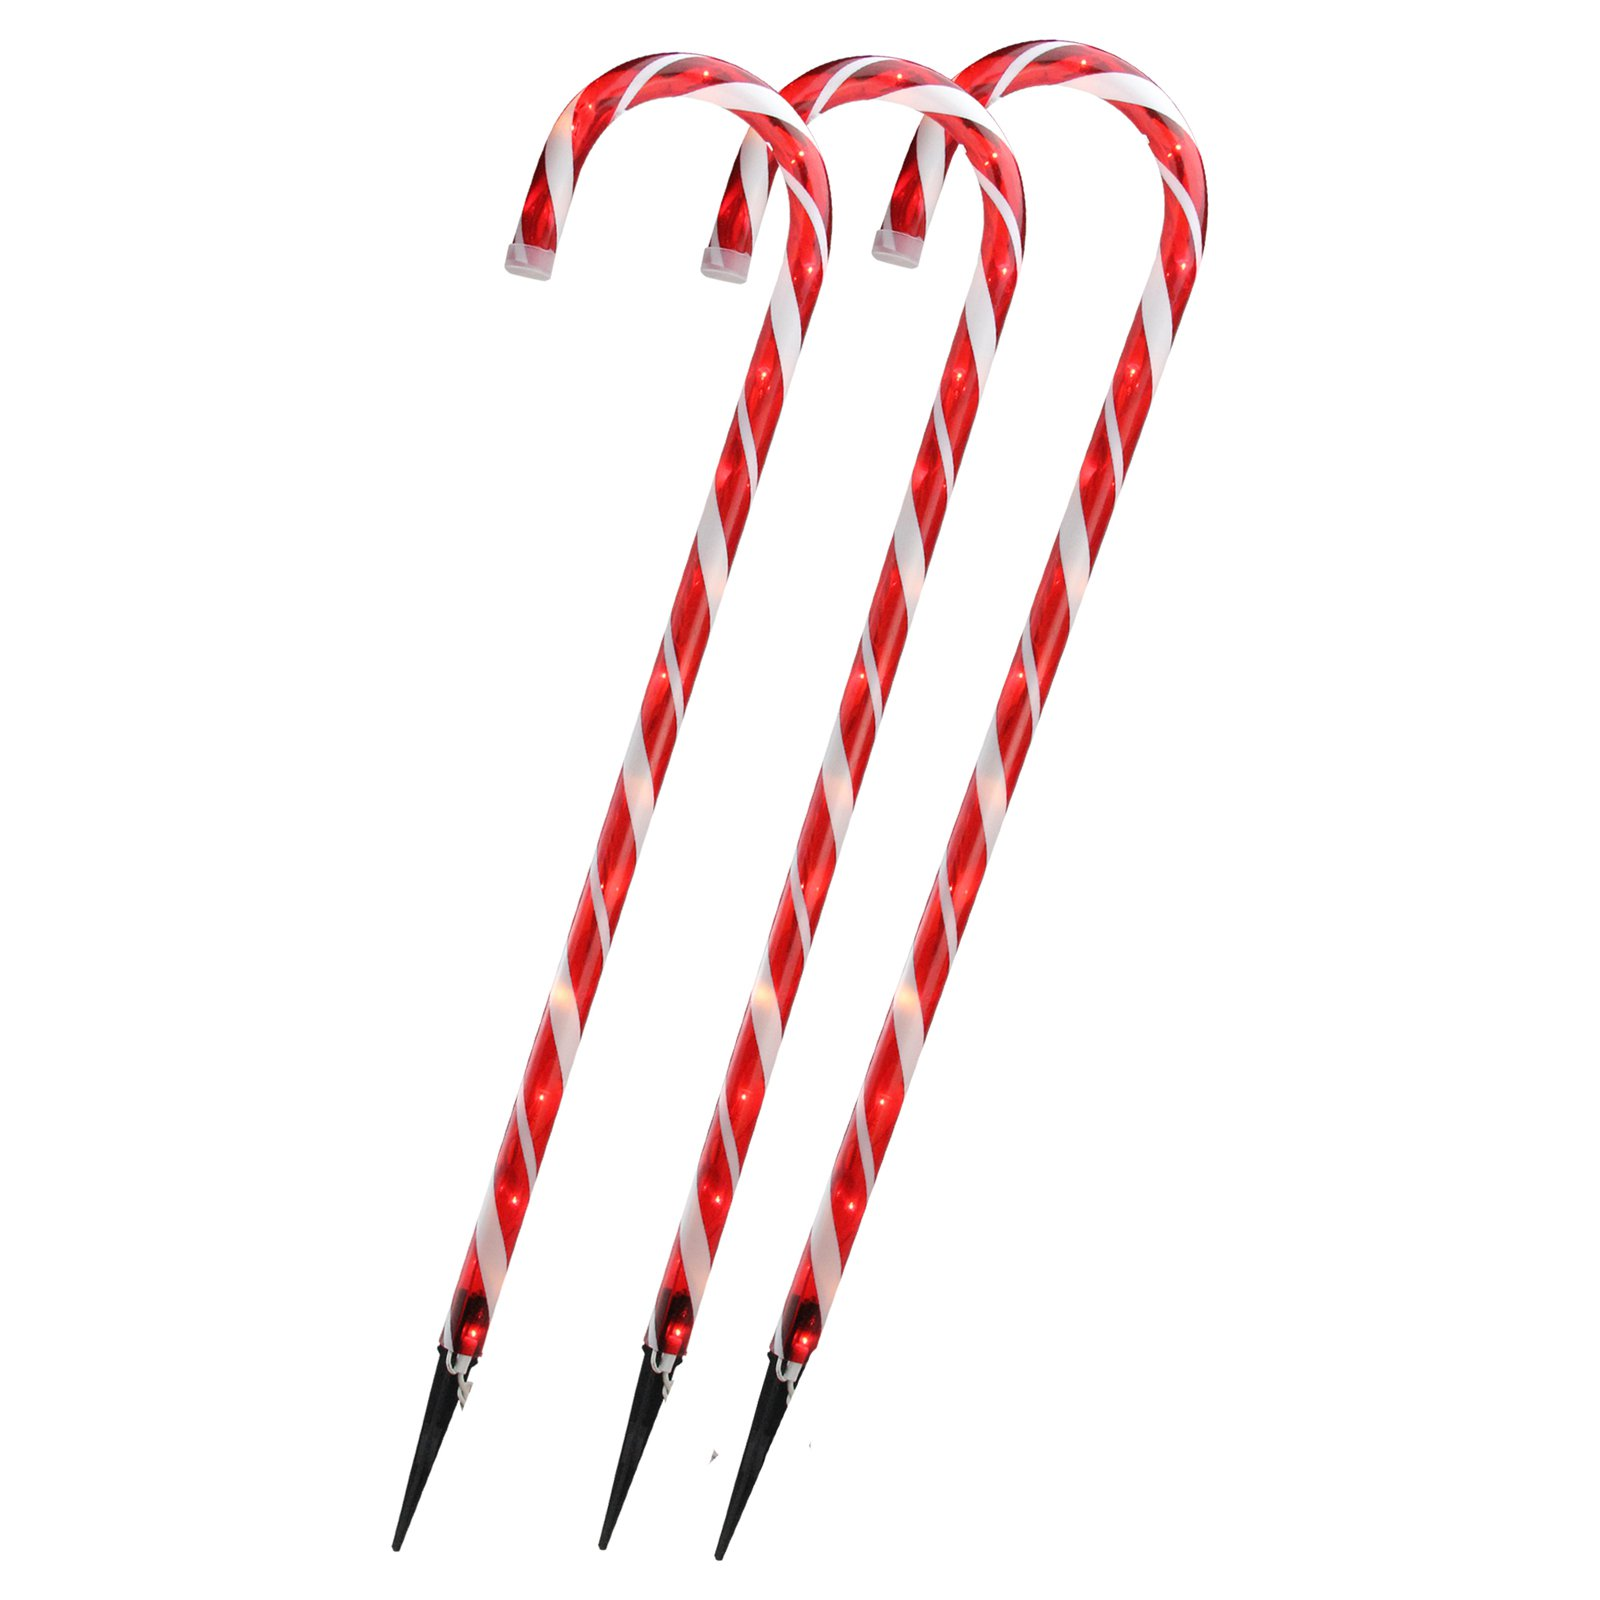 Northlight 28 in. Candy Cane Pre Lit Christmas Outdoor Yard Art - Set of 3